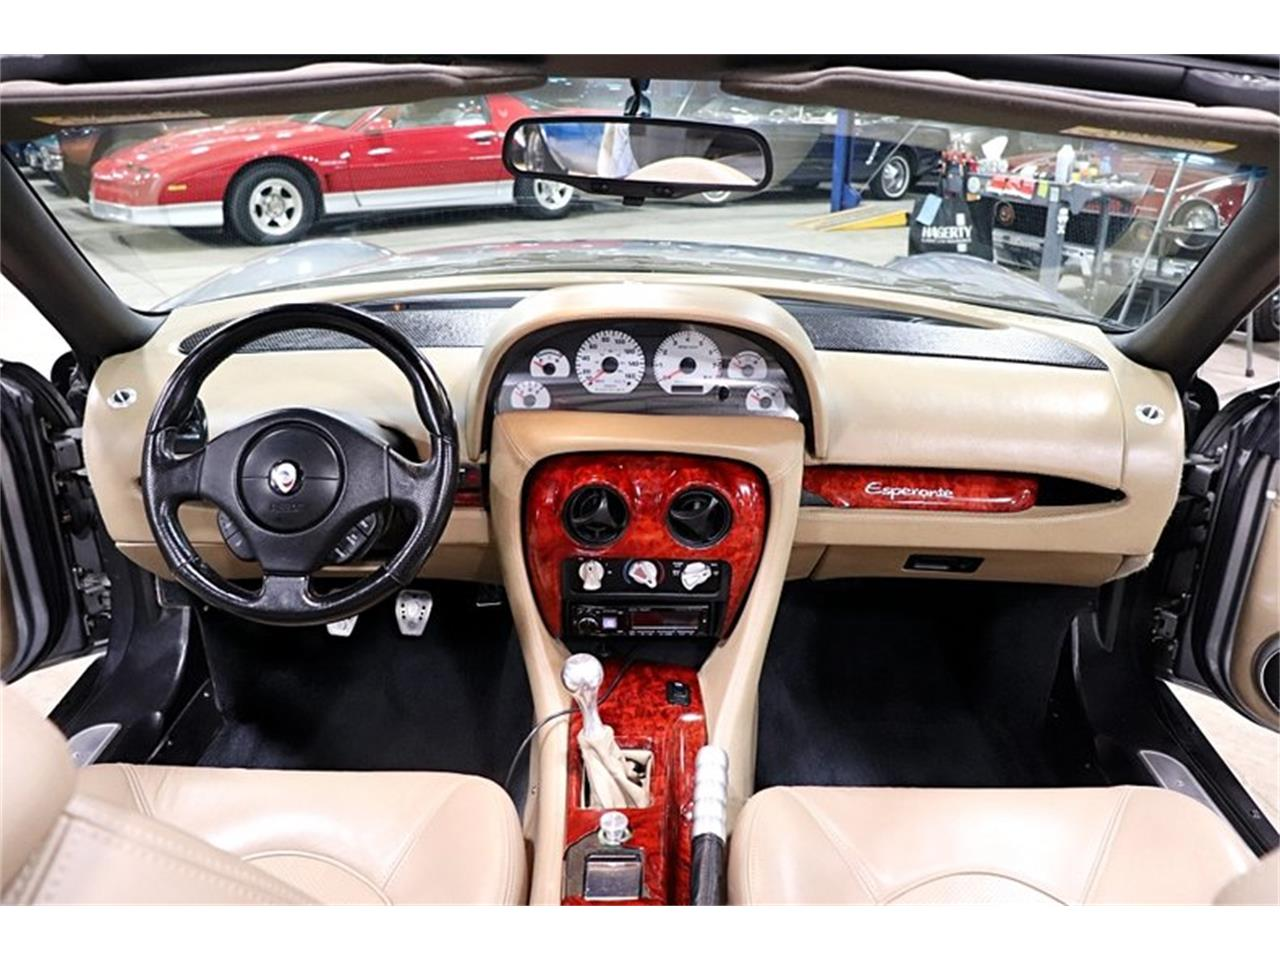 2001 Panoz Esperante for sale in Kentwood, MI – photo 41